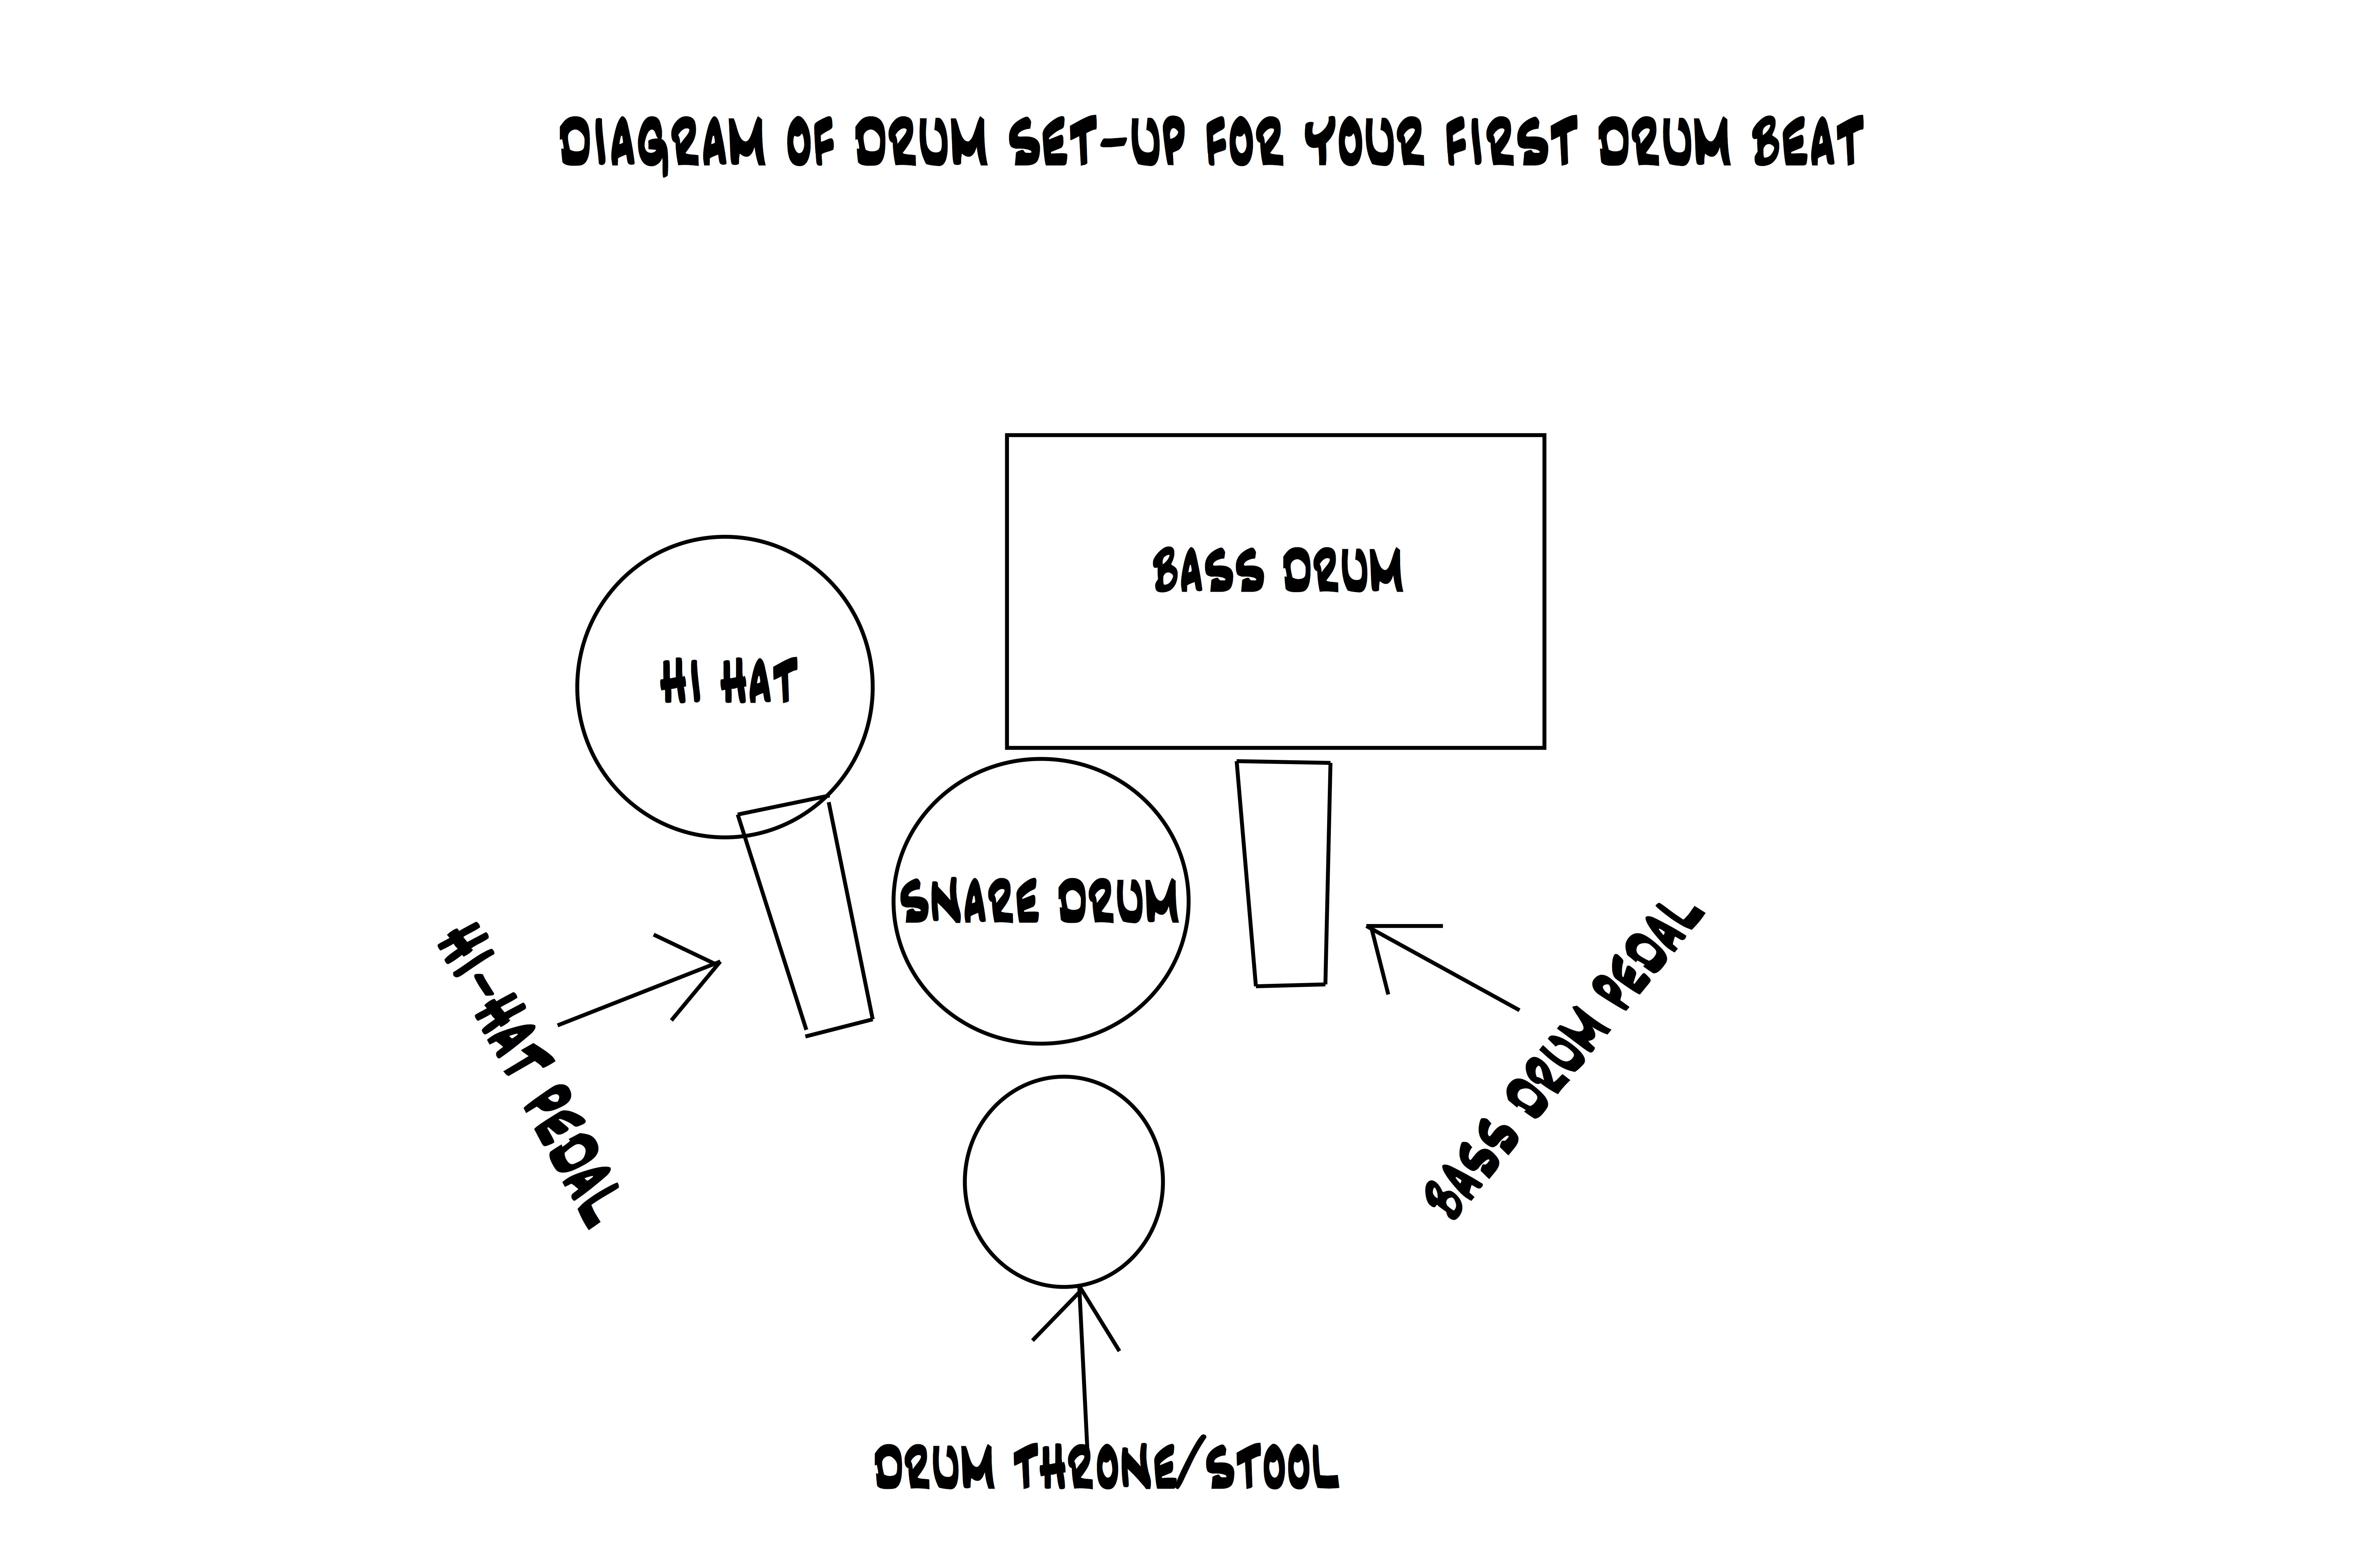 diagram of drum set up for your first drum beat rh bangthedrumschool com setting up drum set diagram drum set setup diagram